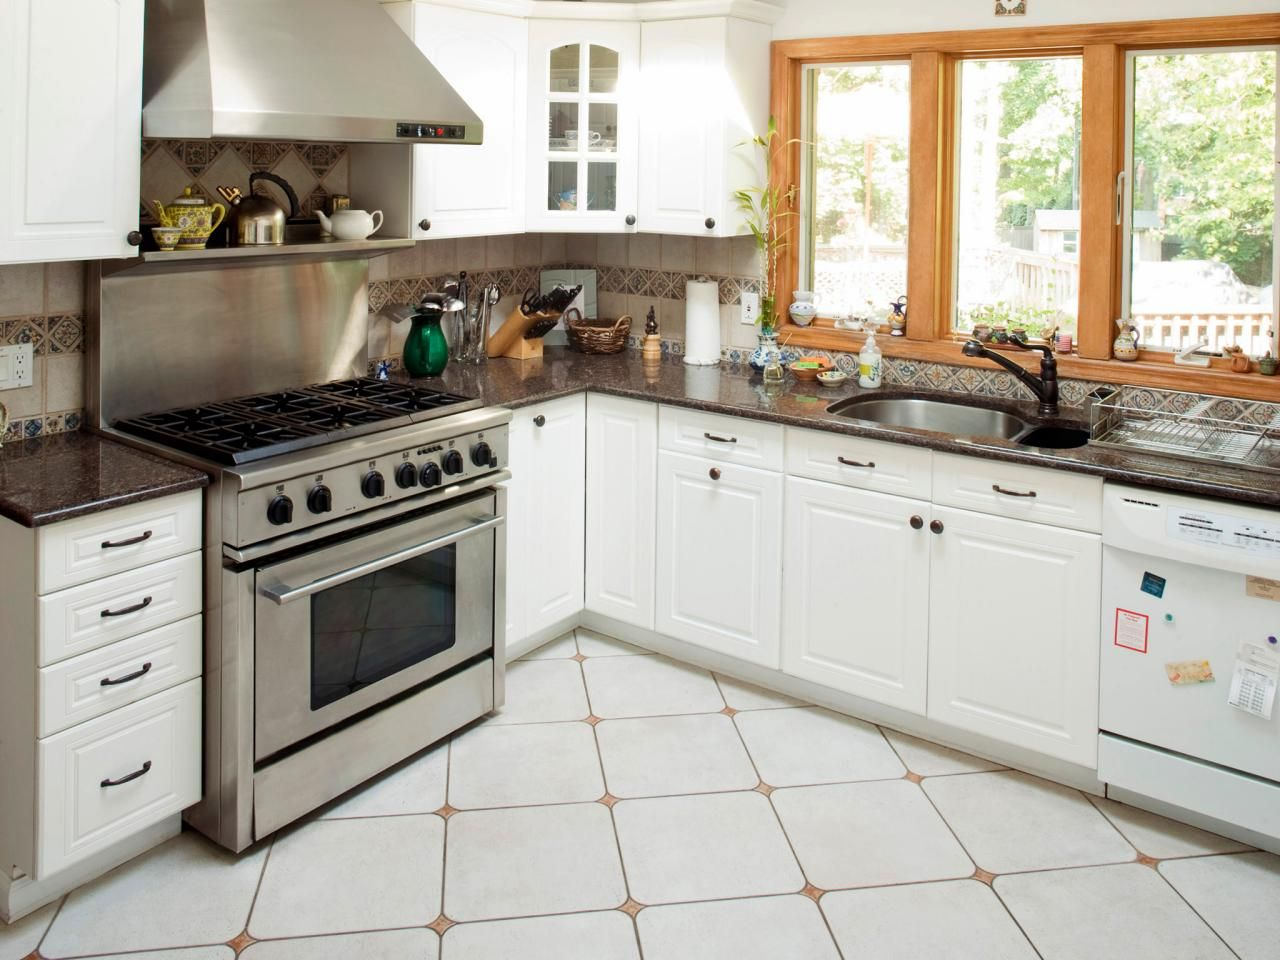 Image Result For 405 Cabinet Price Spartan White Vsvenice Creme Gorgeous Cheap Kitchen Remodel Ideas 2018